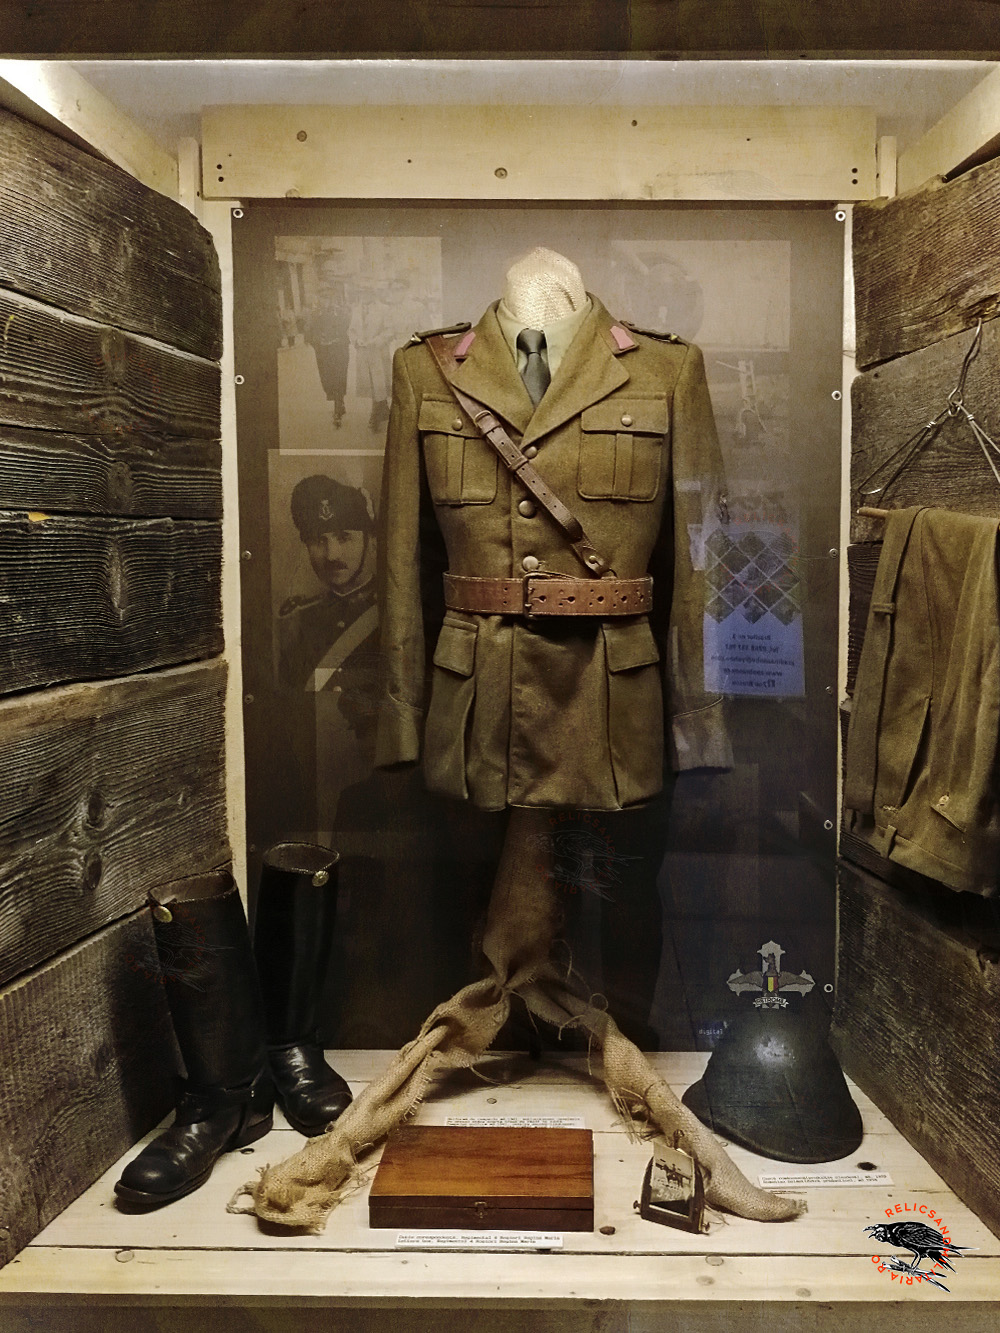 14 Romanian officer WW2 uniform